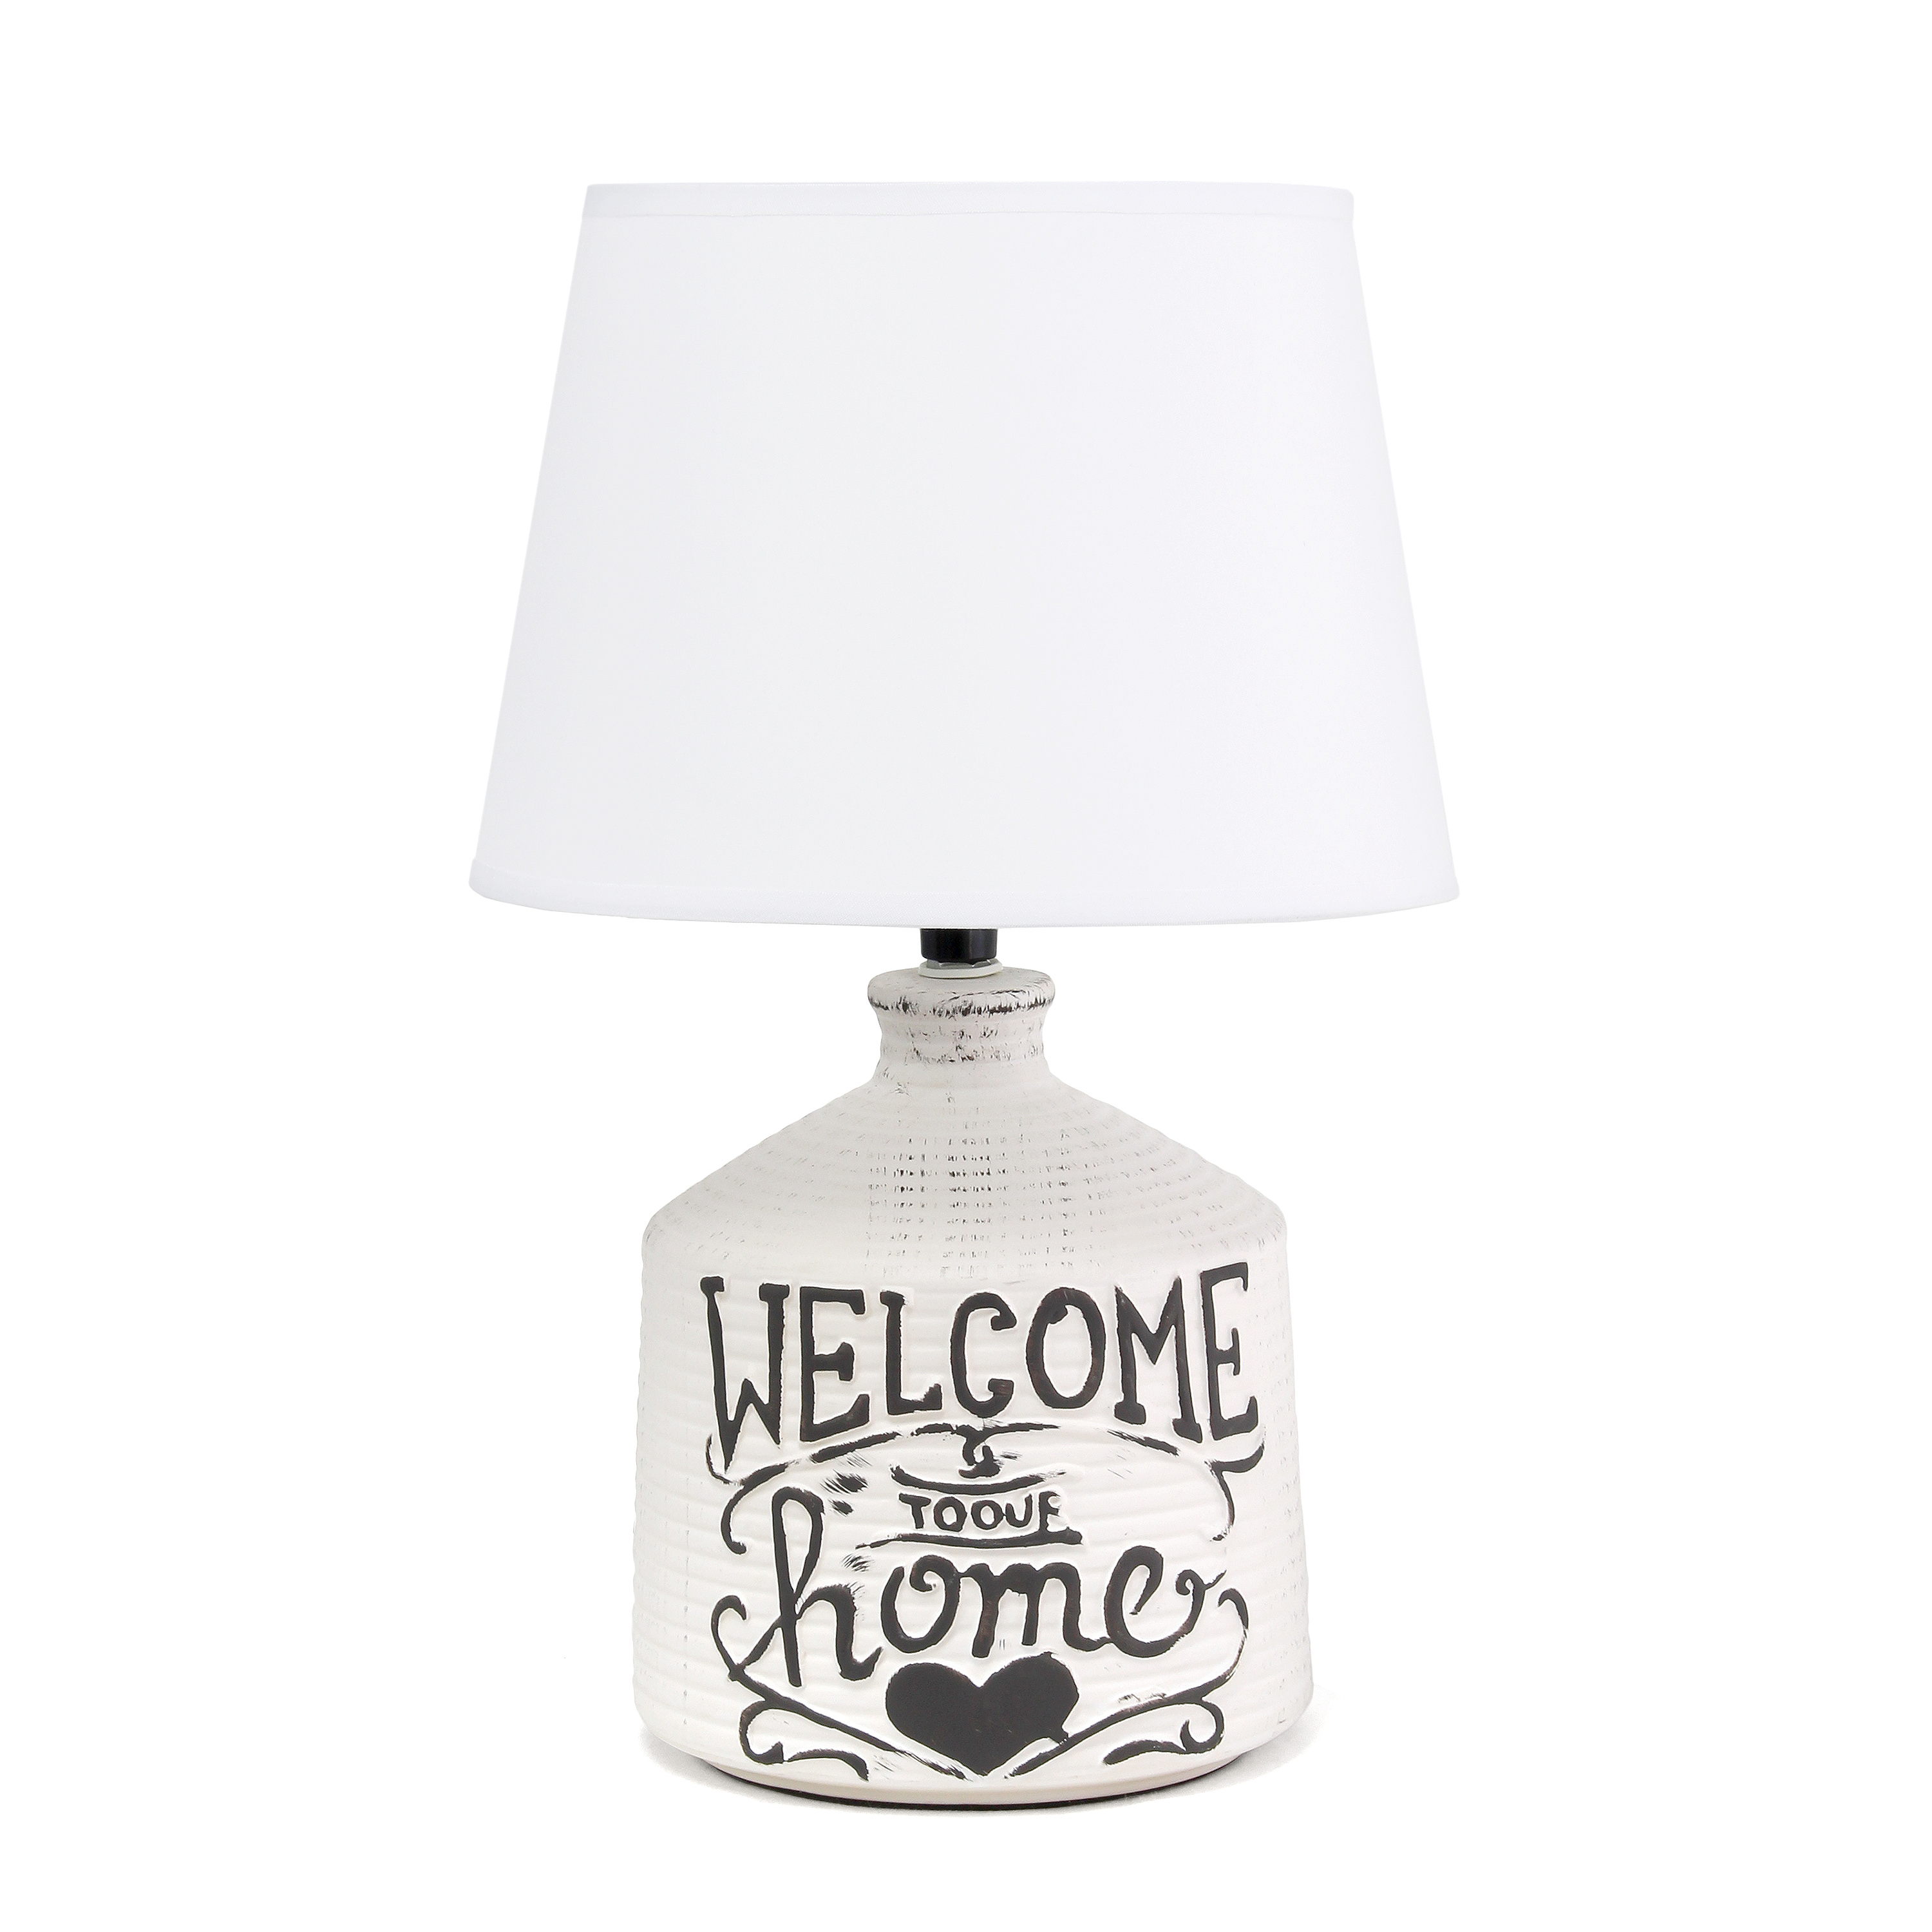 Simple Designs Welcome Home Rustic Ceramic Farmhouse Foyer Entryway Accent Table Lamp with Fabric Shade